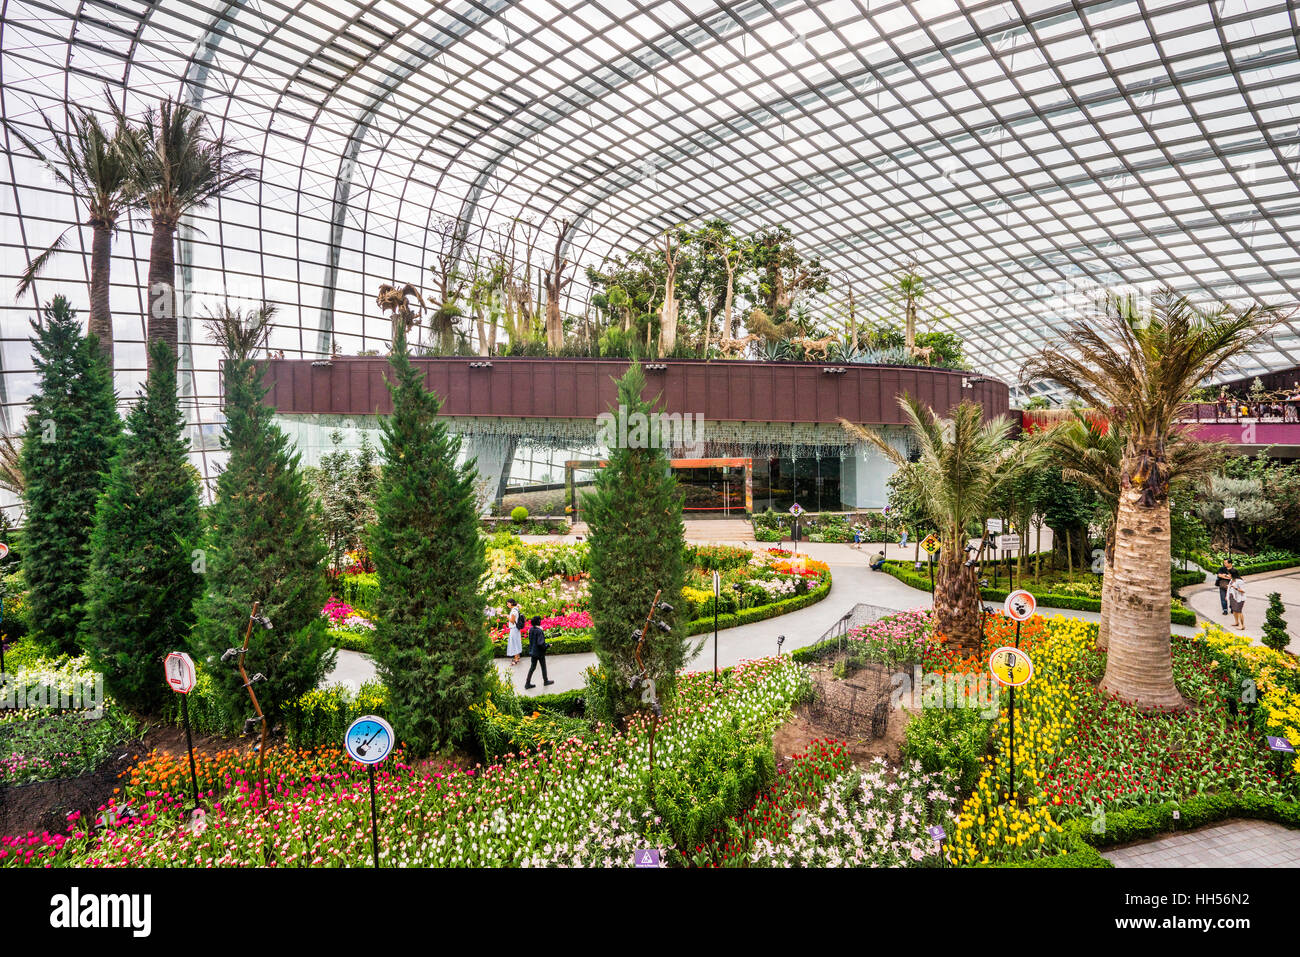 Singapore, Gardens by the Bay, the Flower Dome giant green house - Stock Image